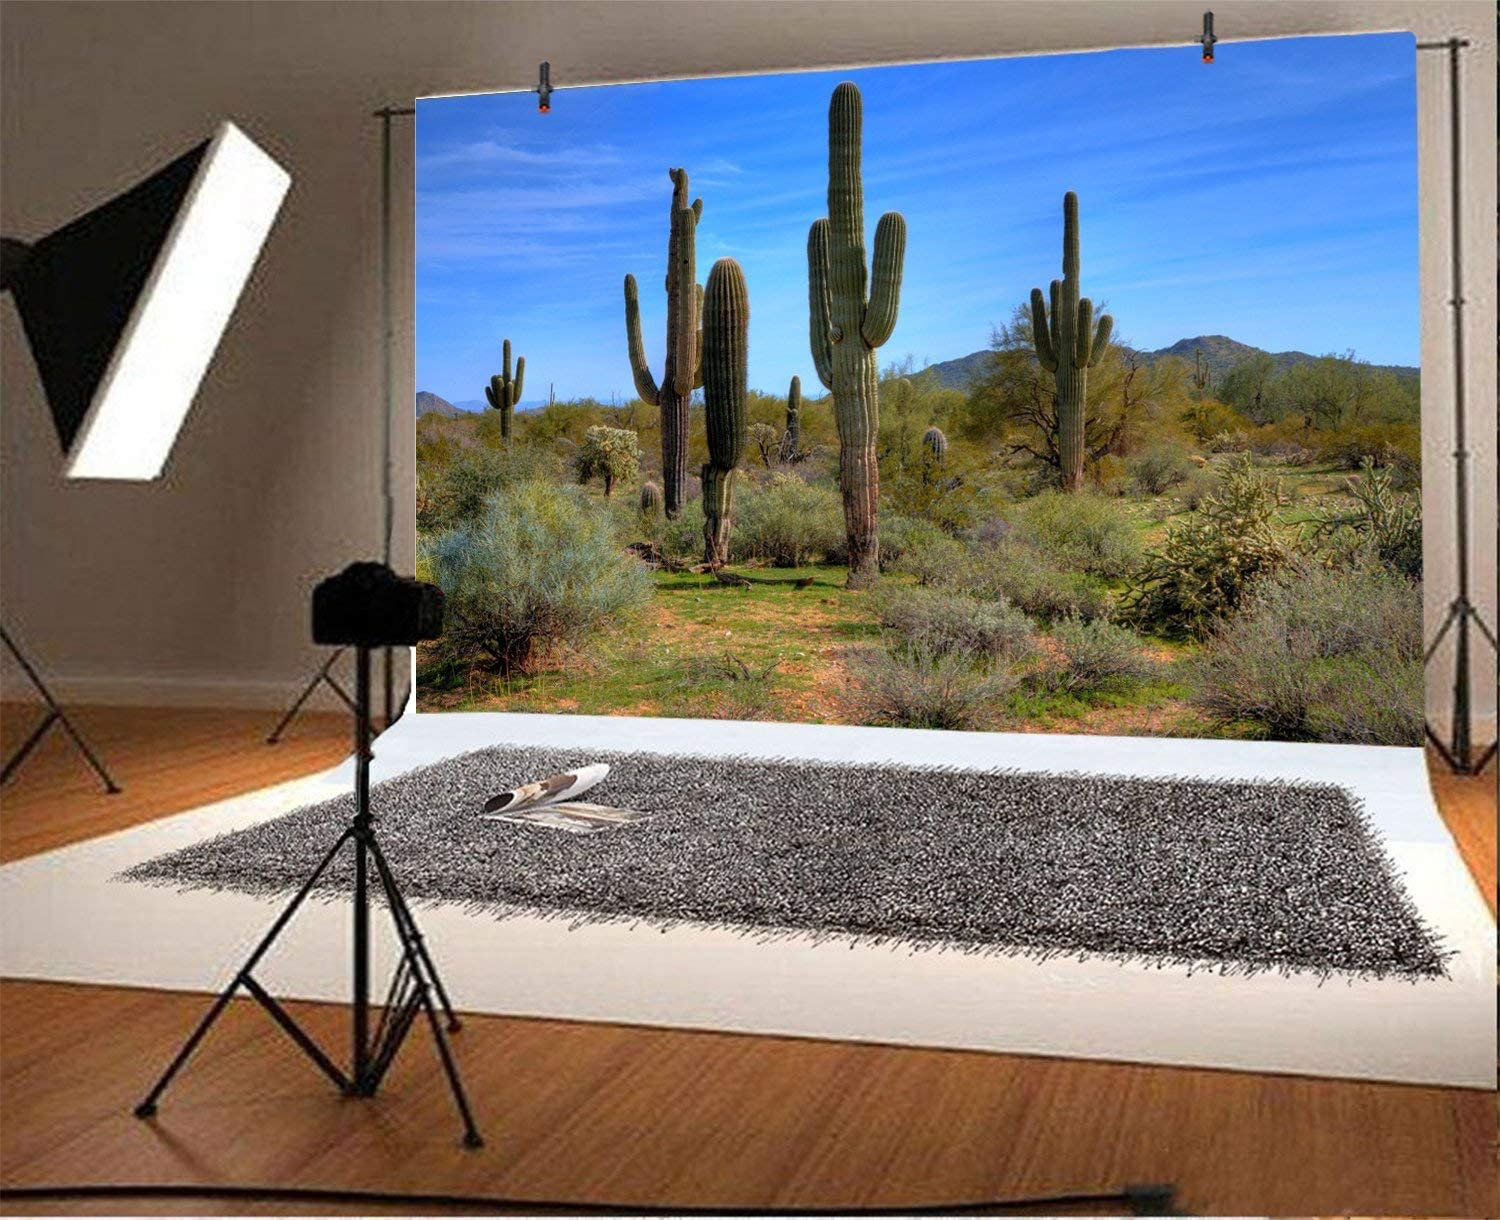 15x10ft Western Wild Cactus Backdrop Blue Sky Southwest Desert Green Large Prickly Cholla Stem Mountains Photography Background Travel West Exploration Photo Studio Props